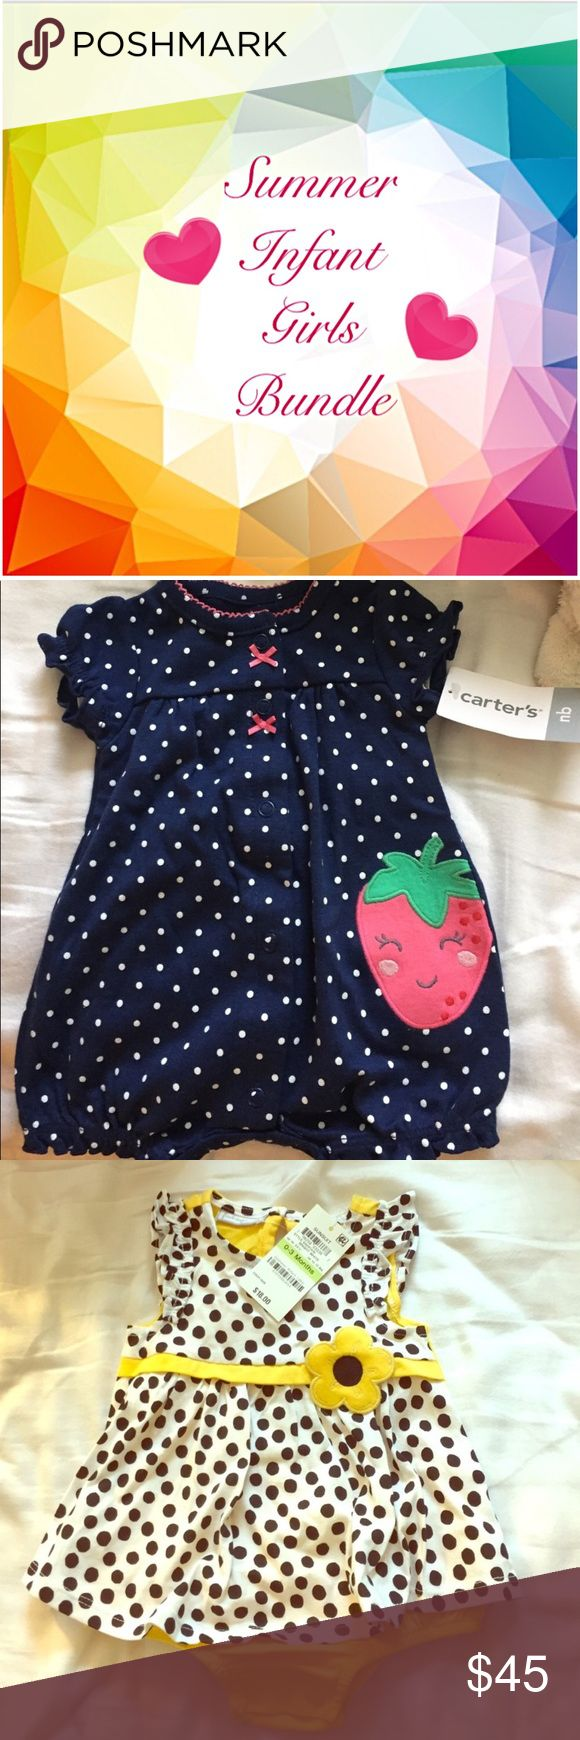 NWT Infant Girls summertime bundle 7 great pieces for your little girl (0-3 m clothes everything else 0+). Items retails at $110 in store. NWT nb Carter's navy polka dot strawberry onesie ($14) NWT 0-3m yellow & polka dot sundress ($18) NWT 0-12m strawberry diaper cover ($12) NWT 3m Carter's heart tee and frog hat ($15) NWT 0-3m mint and flower scarf bib&headband ($18) NWOT Carter's OS fish bib (tiny unnoticeable stain on flower ($12) NWT Lamaze giggle ball ($18) - bought on PM and it sadly…